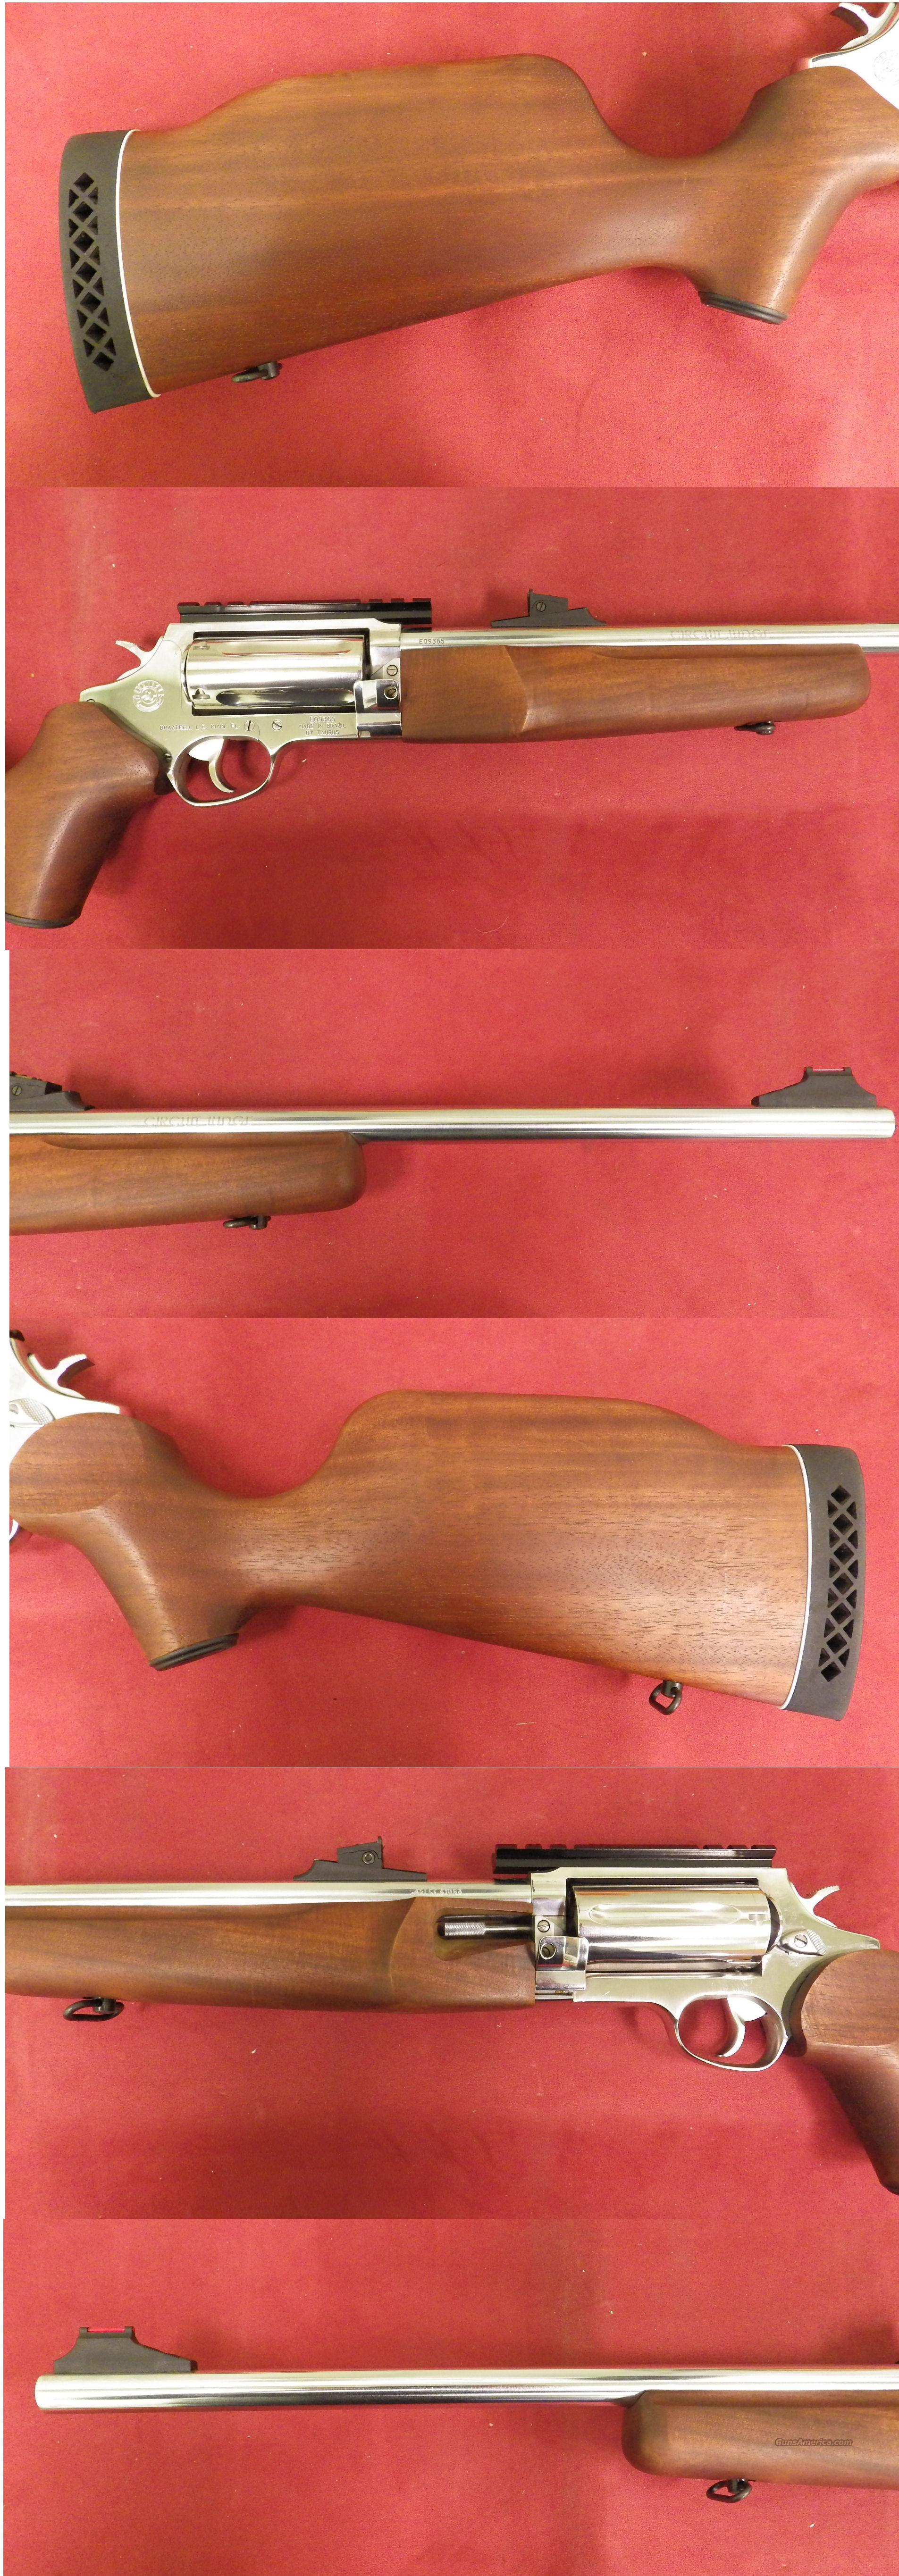 Rossi Circuit Judge .45 Long Colt/.410 Ga*MUST CALL*  Guns > Rifles > Rossi Rifles > Other